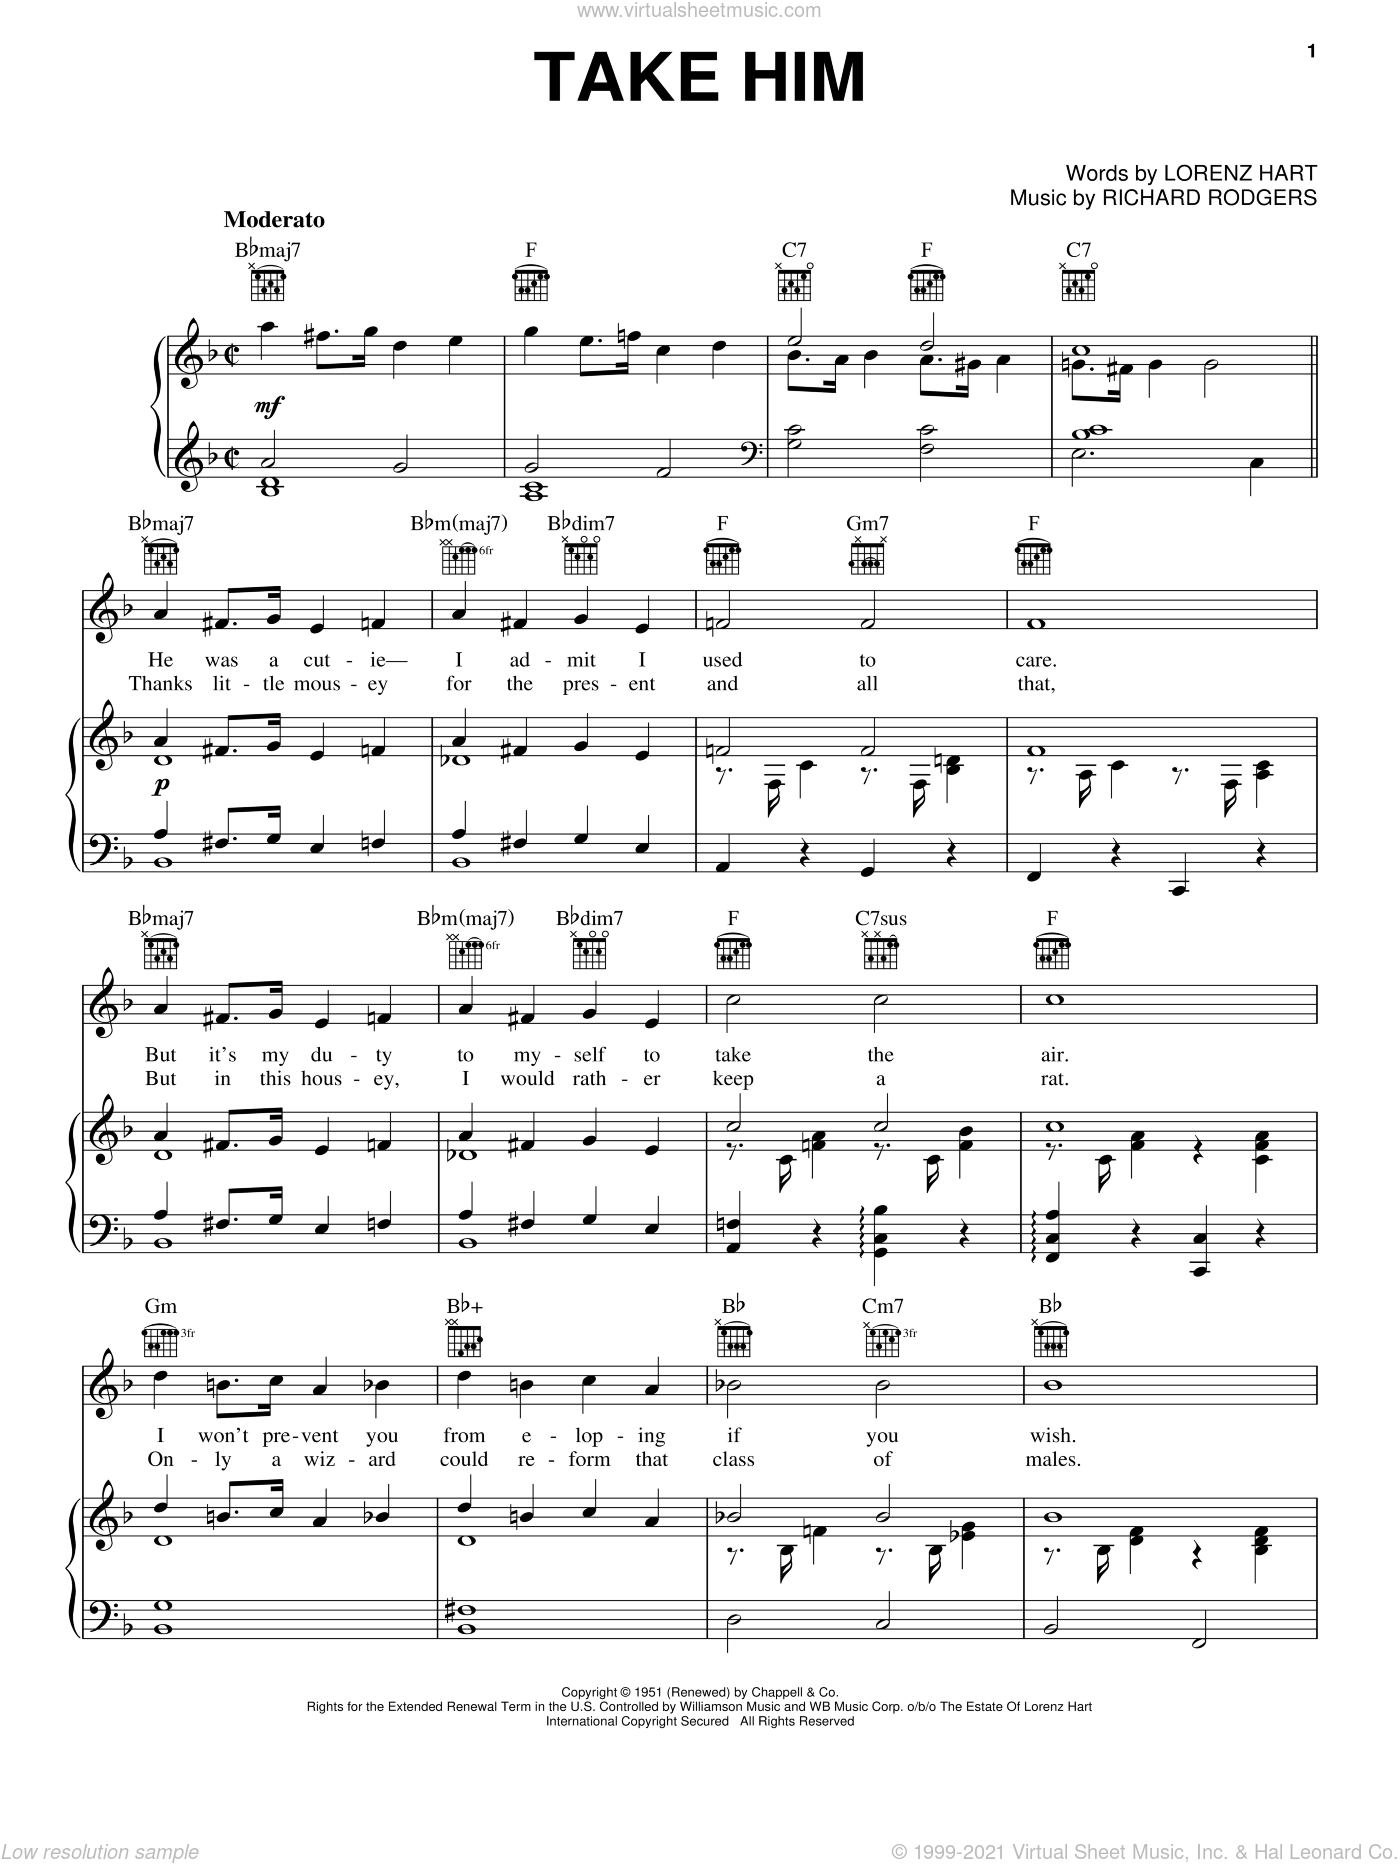 Take Him sheet music for voice, piano or guitar by Lorenz Hart